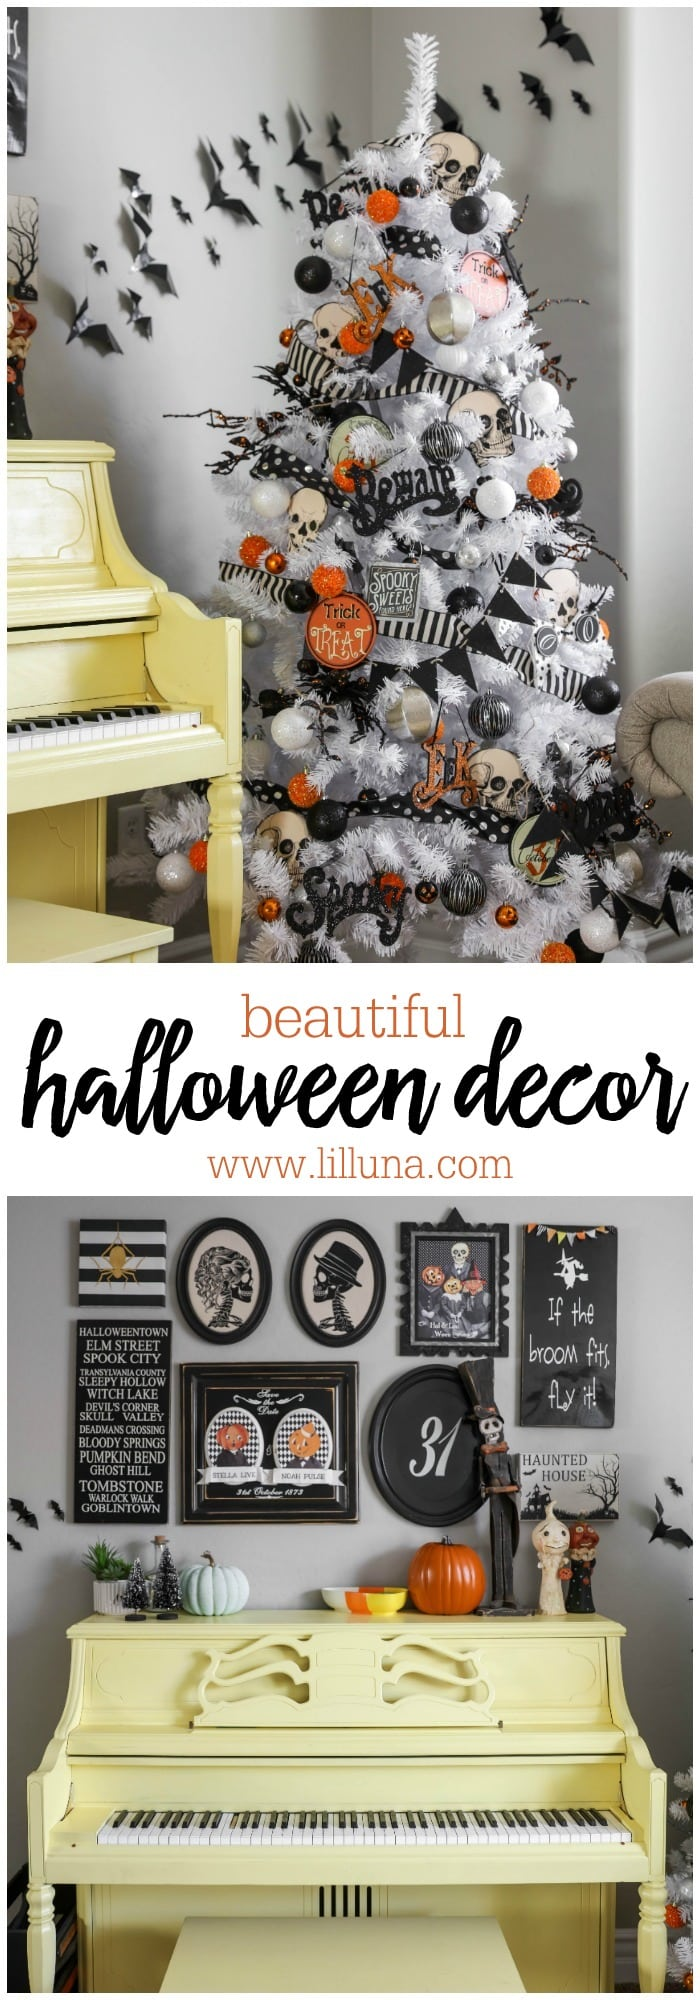 halloween gallery wall decor hallowen walljpg beautiful halloween decor from halloween trees to gallery walls these ideas are awesome